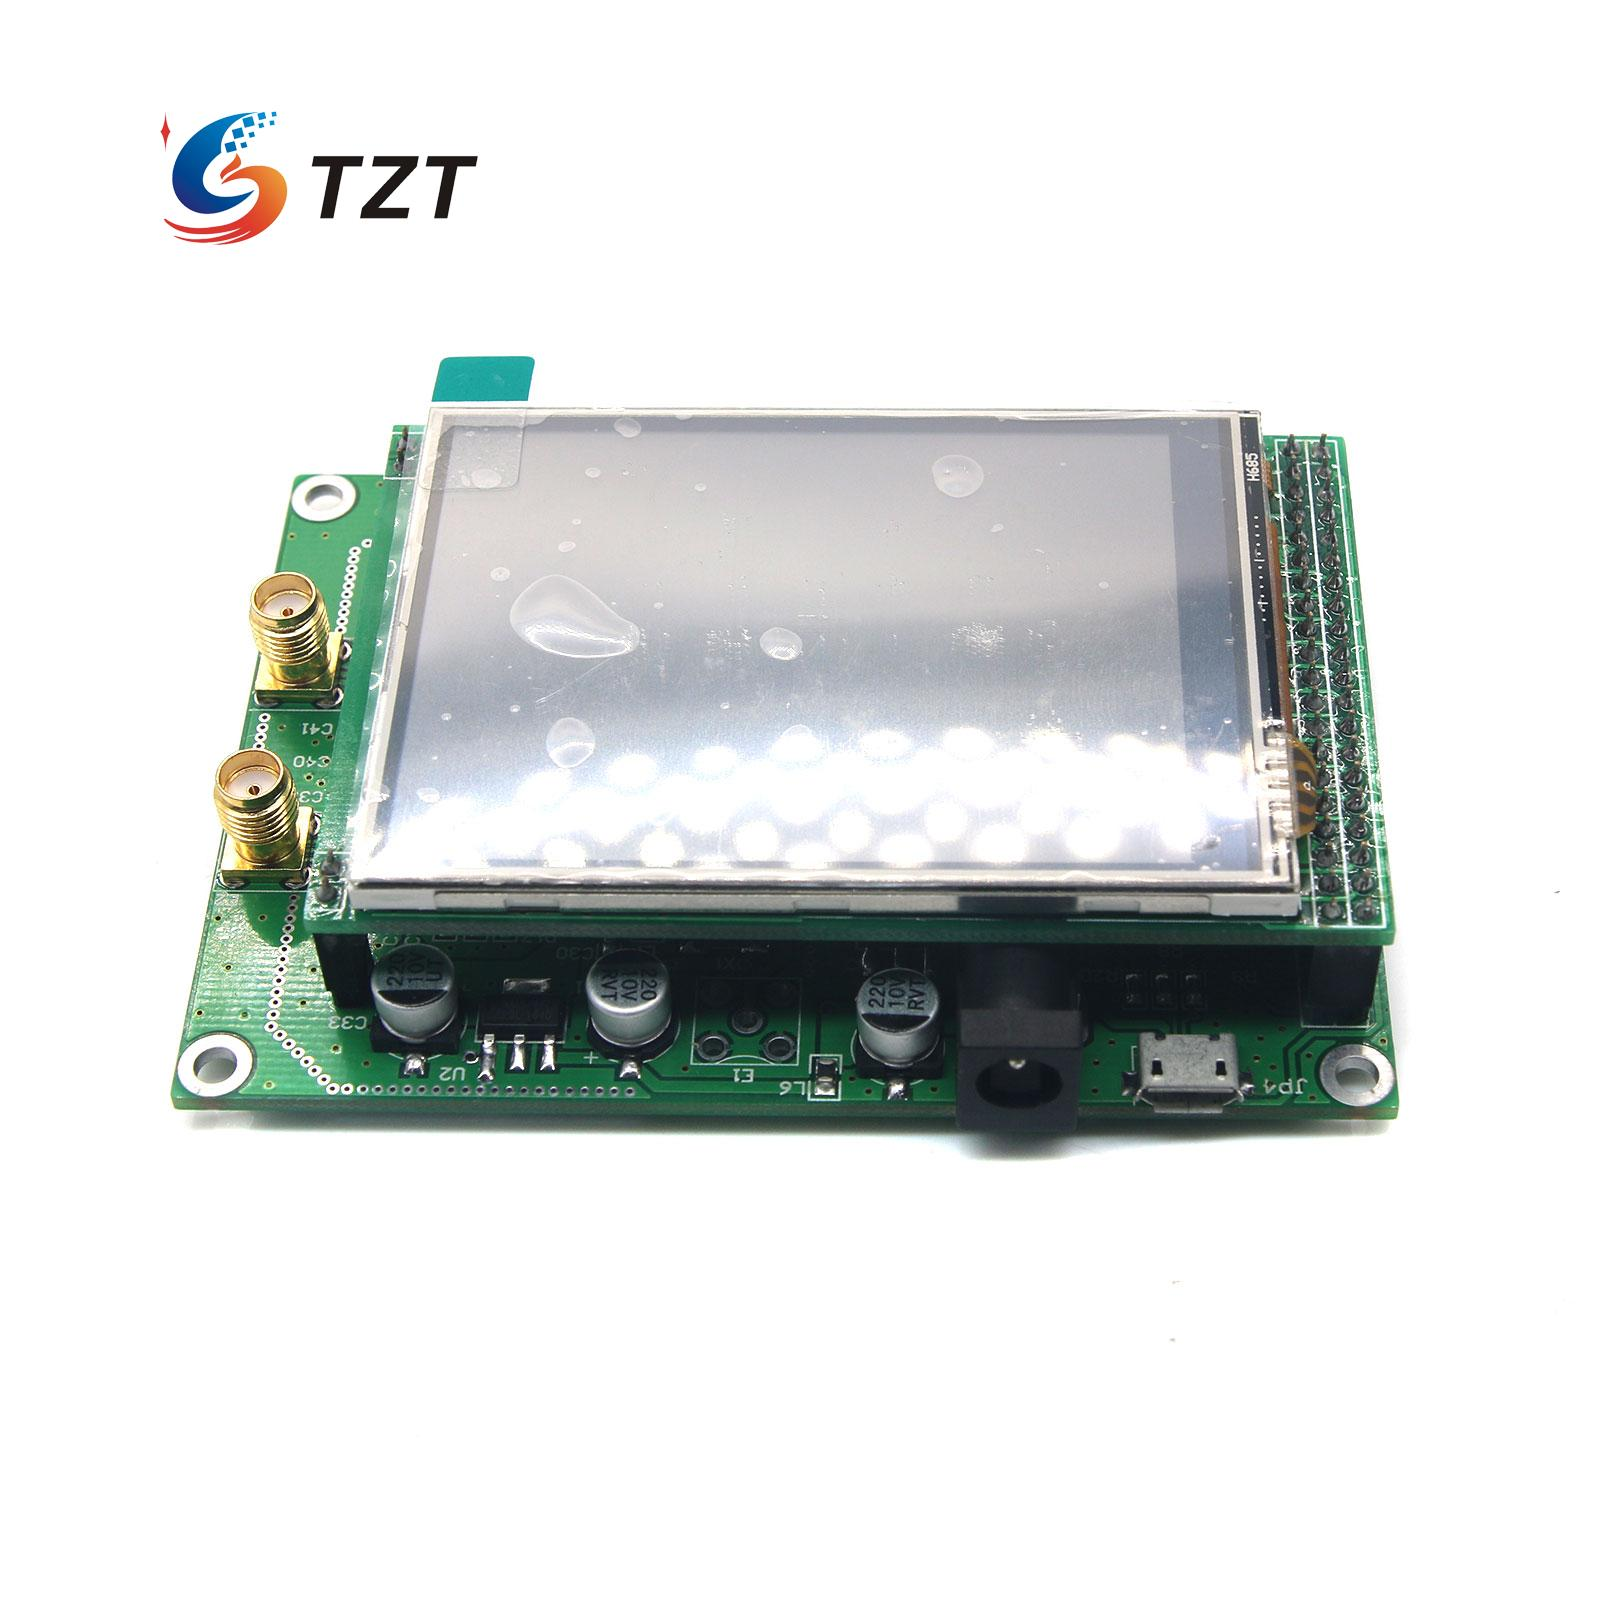 ADF4351 RF Sweep Signal Source Generator Board 35MHz to 4400MHz + STM32 TFT Touch LCD USB Cable adf4350 development board adf4351 development board 35m 4 4g signal source local oscillator signal source